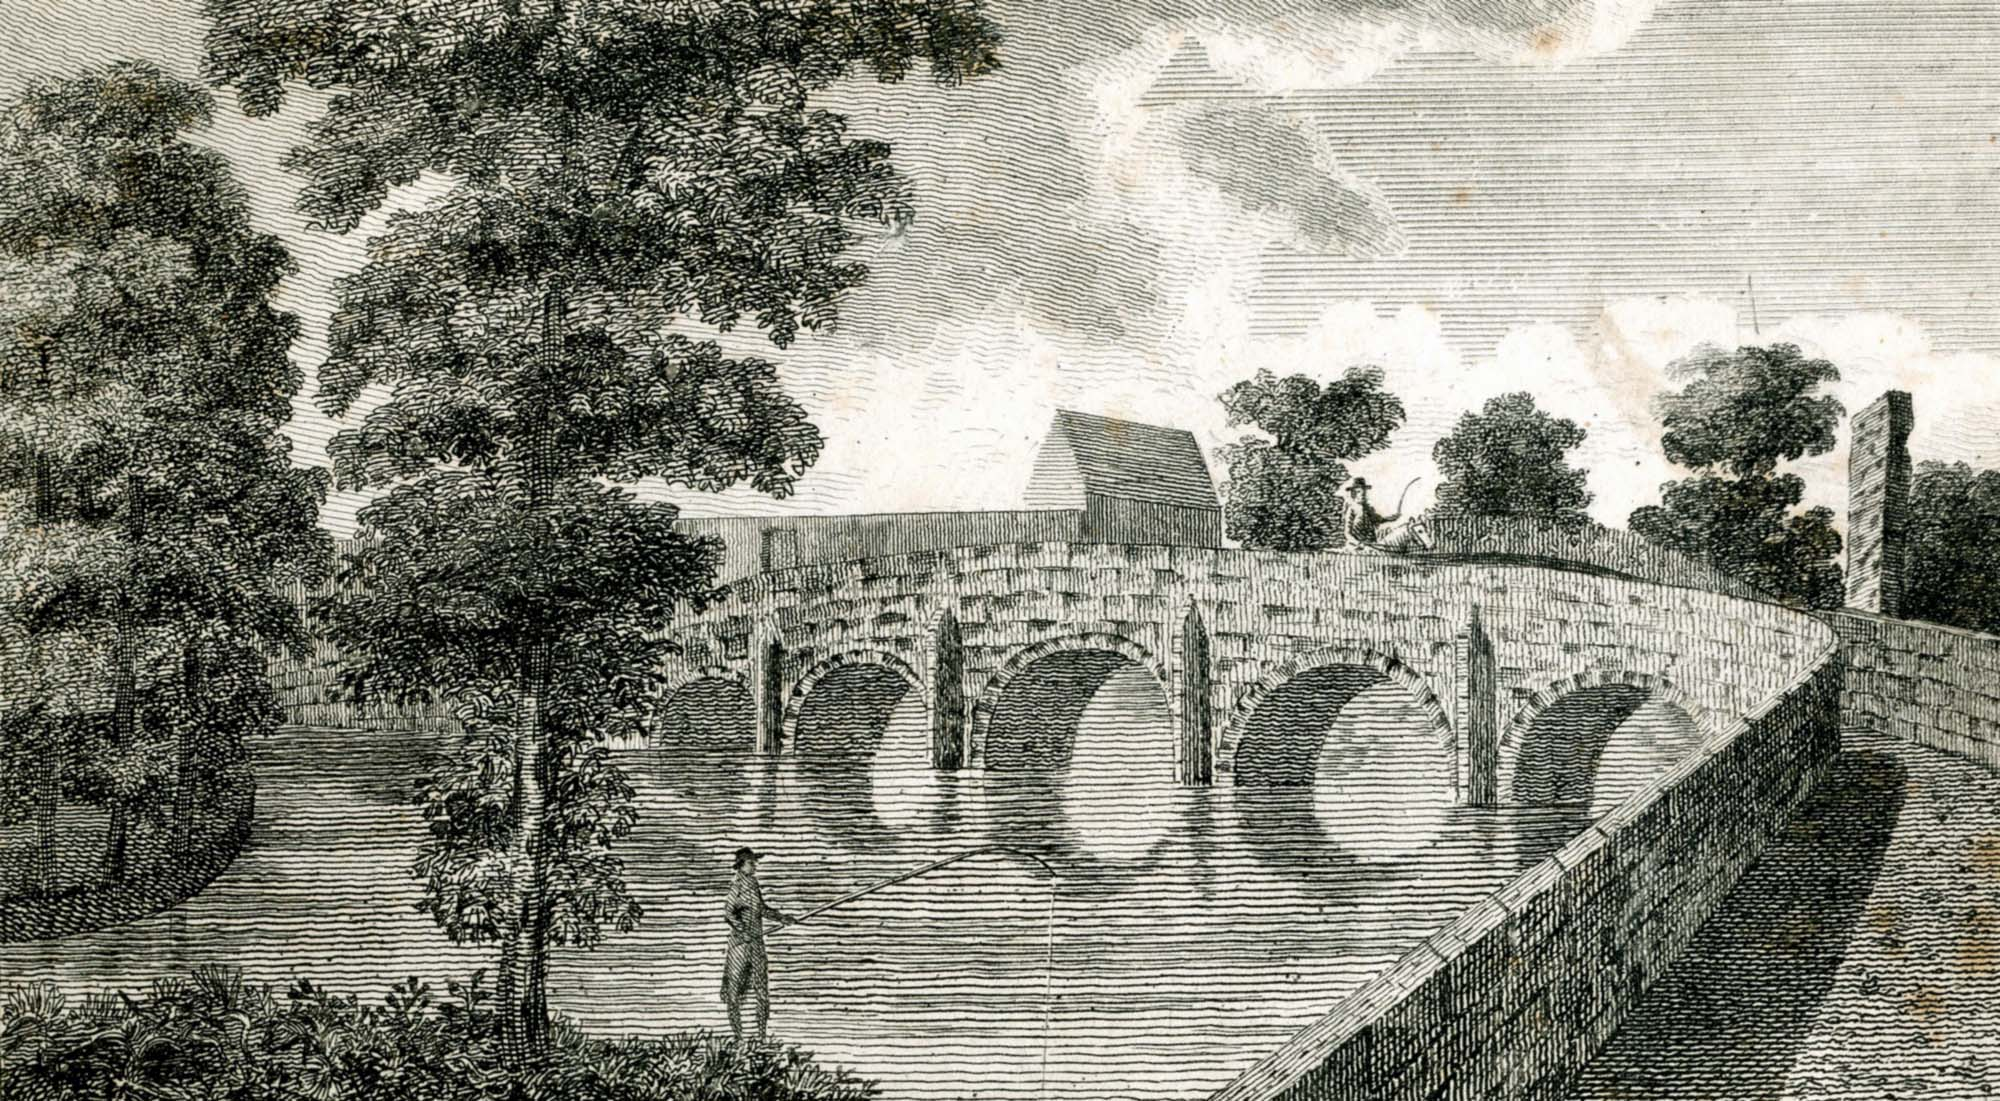 An engraving of 'King Richard's Bridge' by John Throsby, 1791 - University of Leicester Library Special Collections